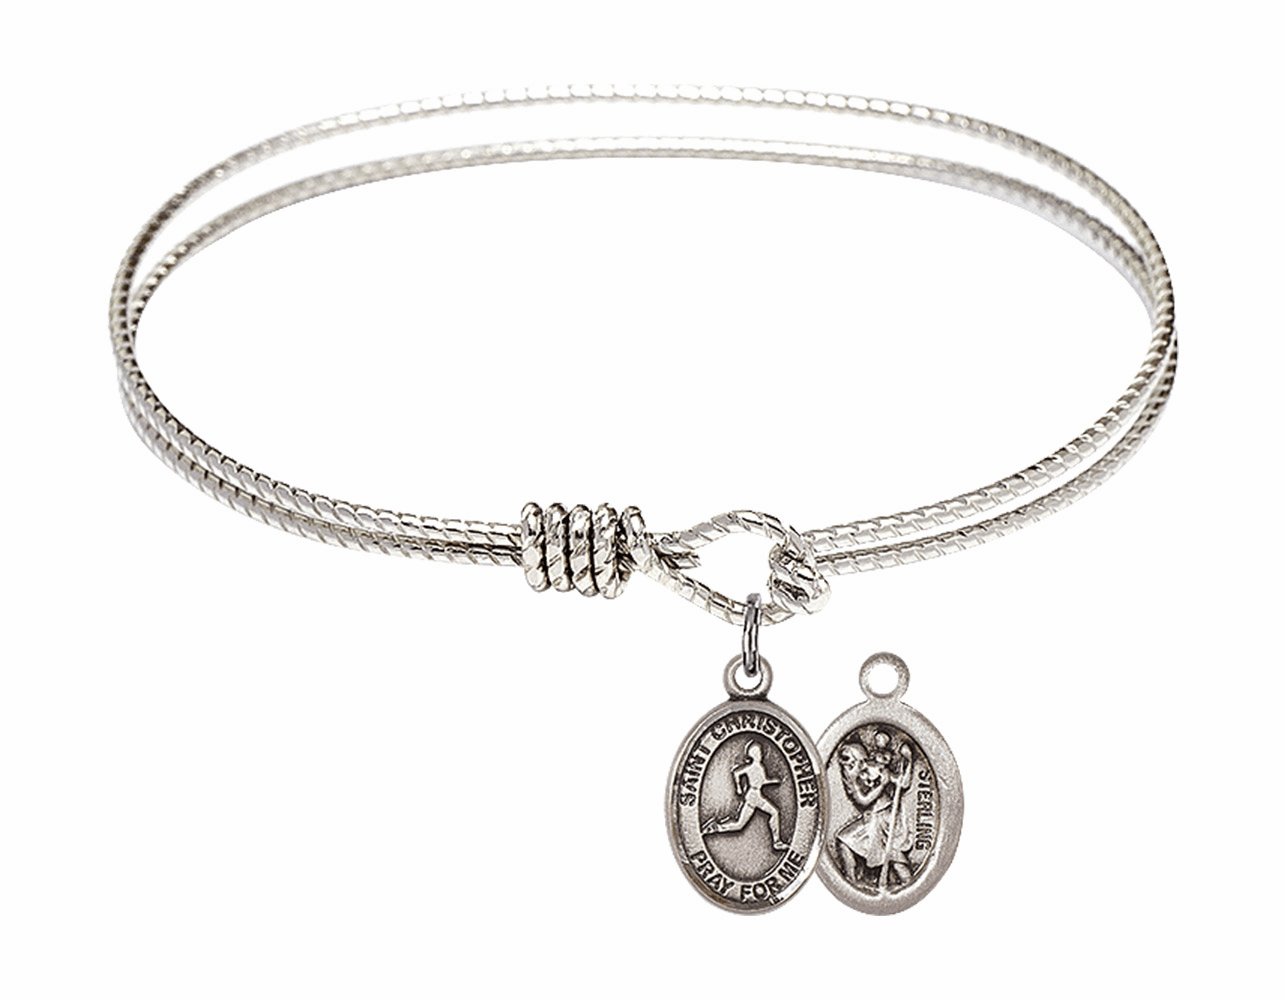 Twist Round Eye Hook St Christopher Track and Field Bangle Charm Bracelet by Bliss